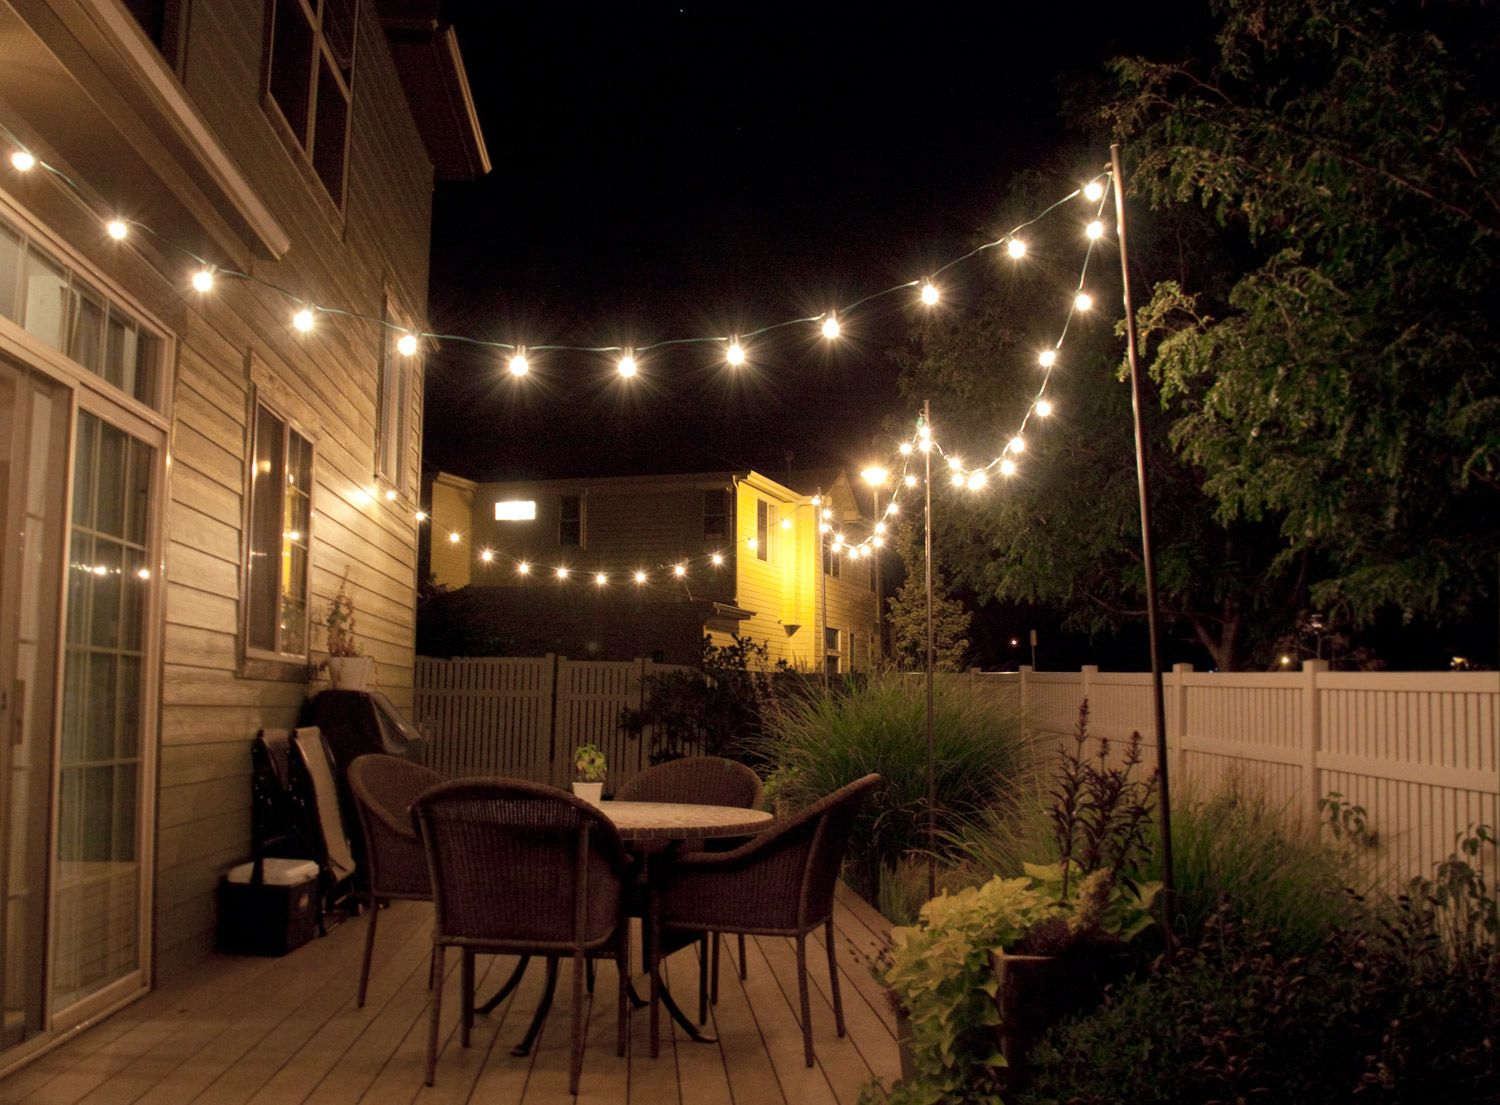 Outdoor Fairy Lights New How To Make Inexpensive Poles To Hang String Lights On  Café Style Decorating Inspiration